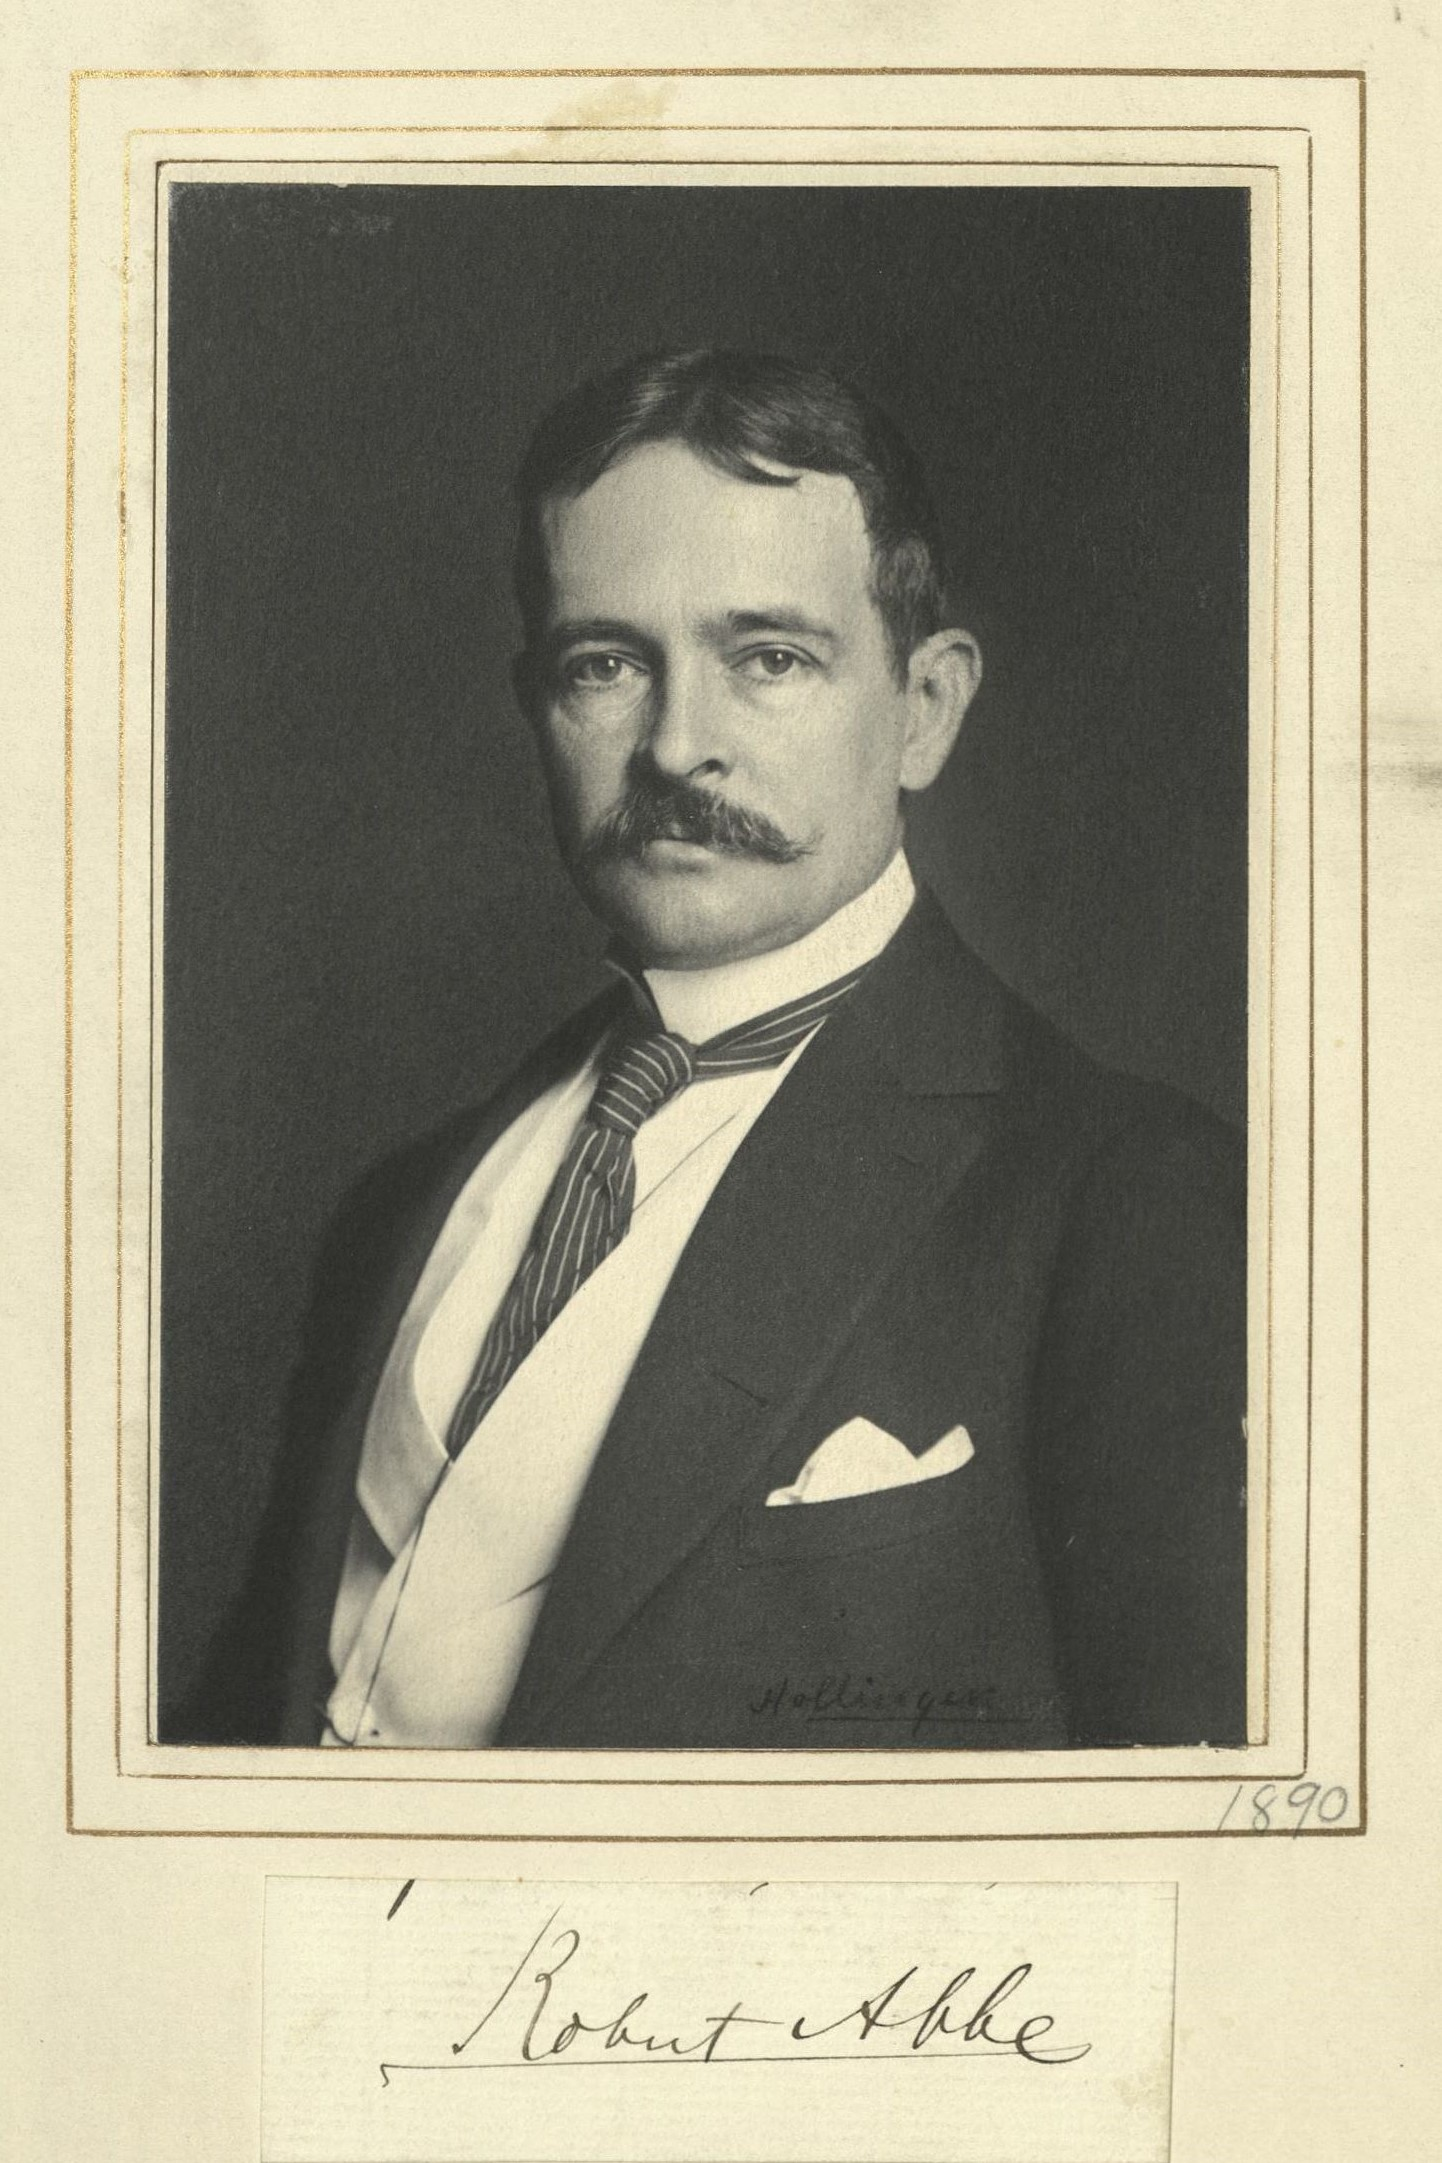 Member portrait of Robert Abbe